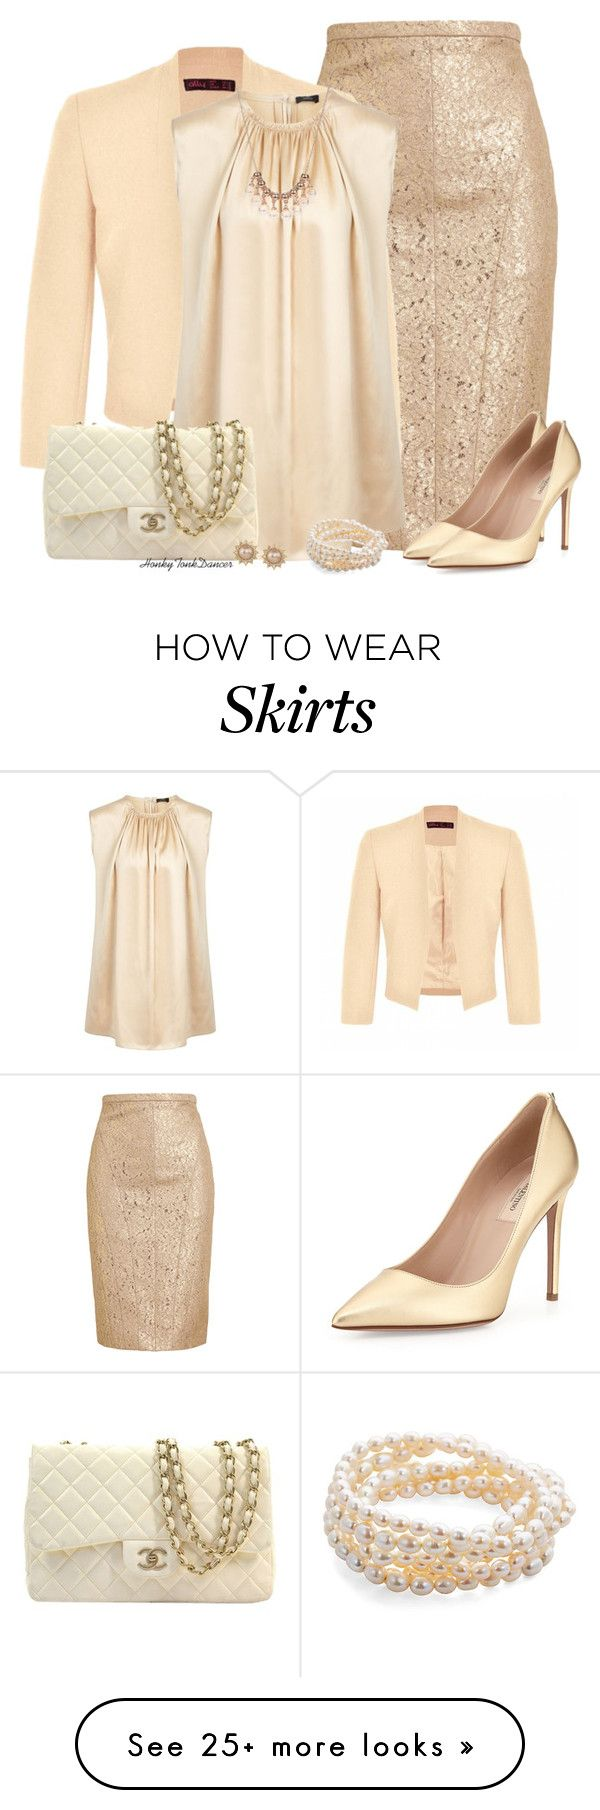 """Gold Lace Pencil Skirt"" by honkytonkdancer on Polyvore featuring N°21, Ally Fashion, Joseph, Valentino, Chanel, Carolee, Catherine Canino Jewelry, Chanelbag, laceskirt and goldandcream"